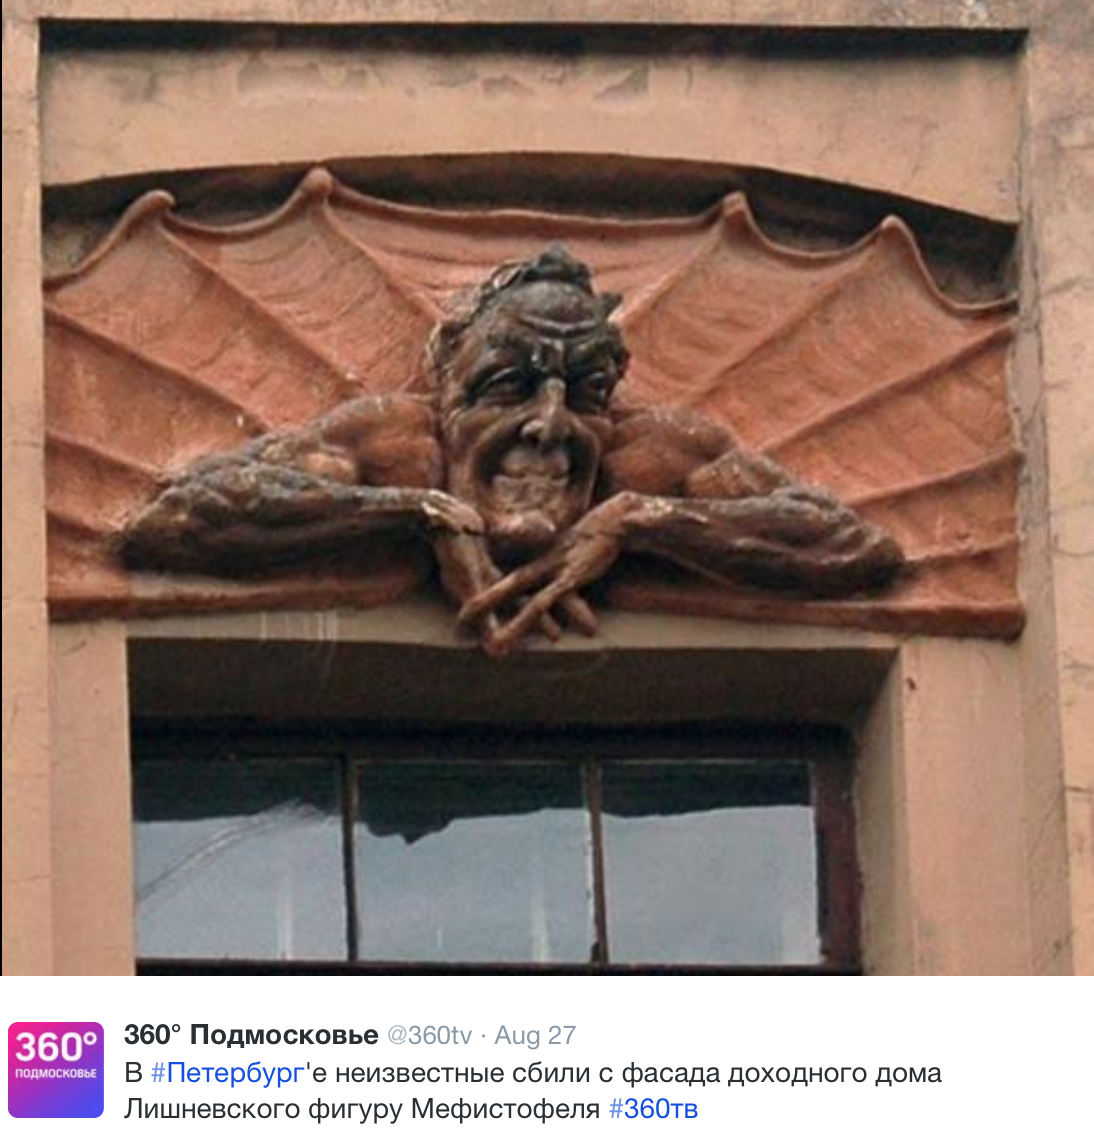 A view of the destroyed Me sculpture in Saint Petersburg before it was pulled down. (via @ 360tv)